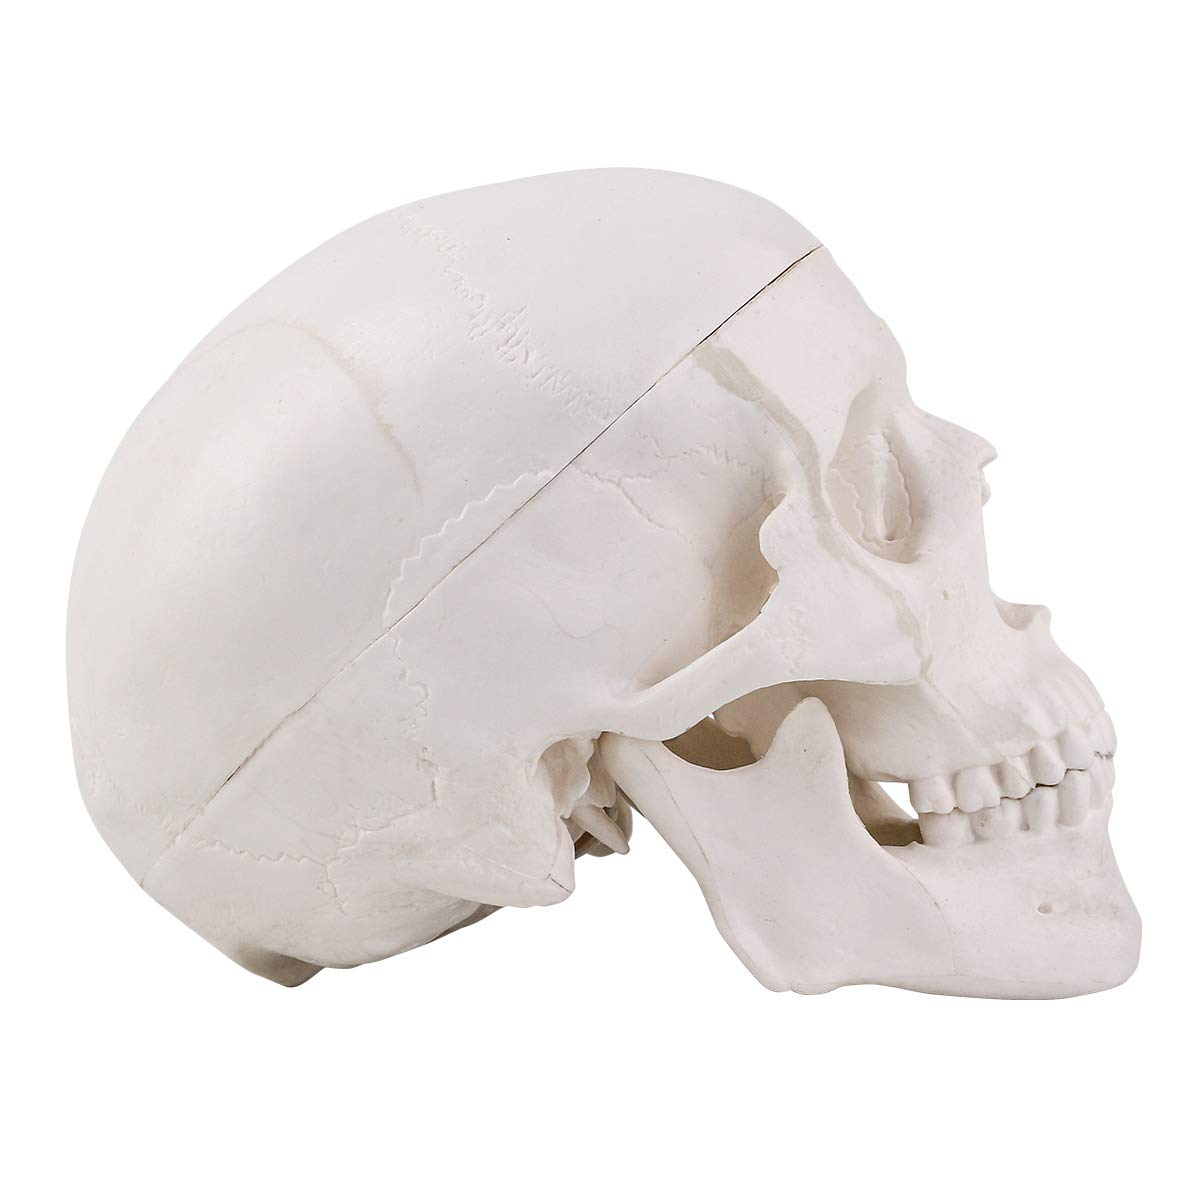 LYOU Human Skull Anatomical Model Hand-Painted in Color Suture Line New Version Life Size 3 Part Adult Human Anatomy Head Skeleton Model with Removable Skull Cap and Moving Jaw